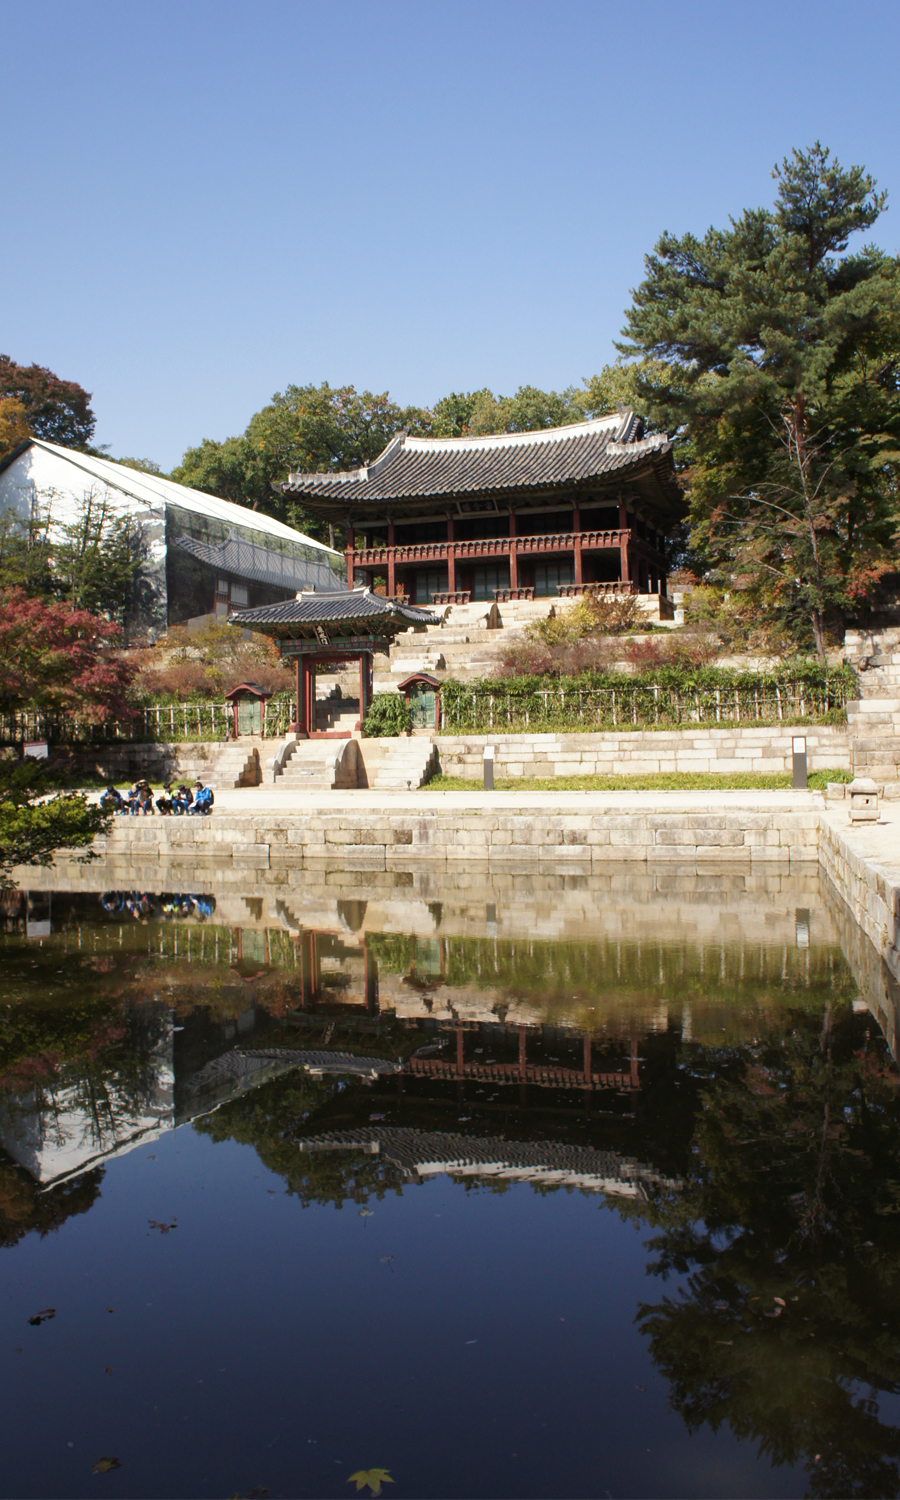 2014-seoul-korea-changdeokgung-palace-secret-garden-biwon-03